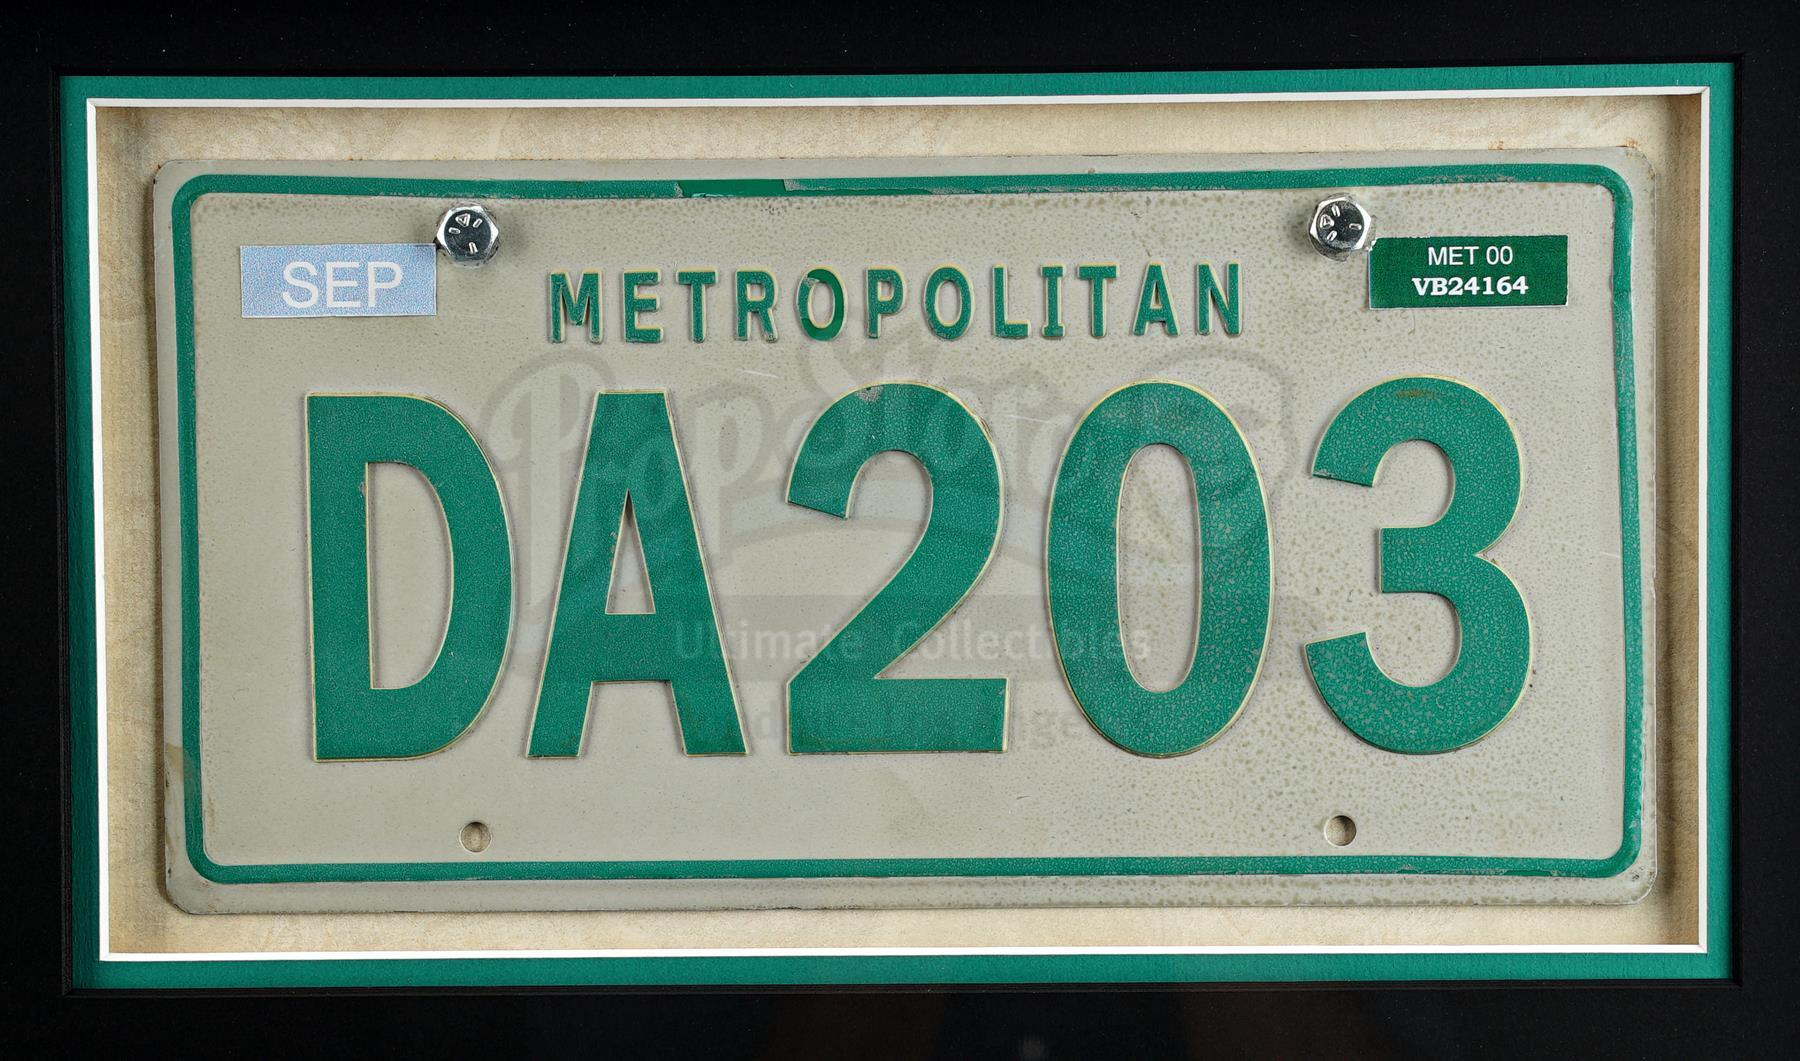 Lot # 869: THE MATRIX RELOADED - Trinity's (Carrie-Anne Moss) Cadillac CTS License Plate Display